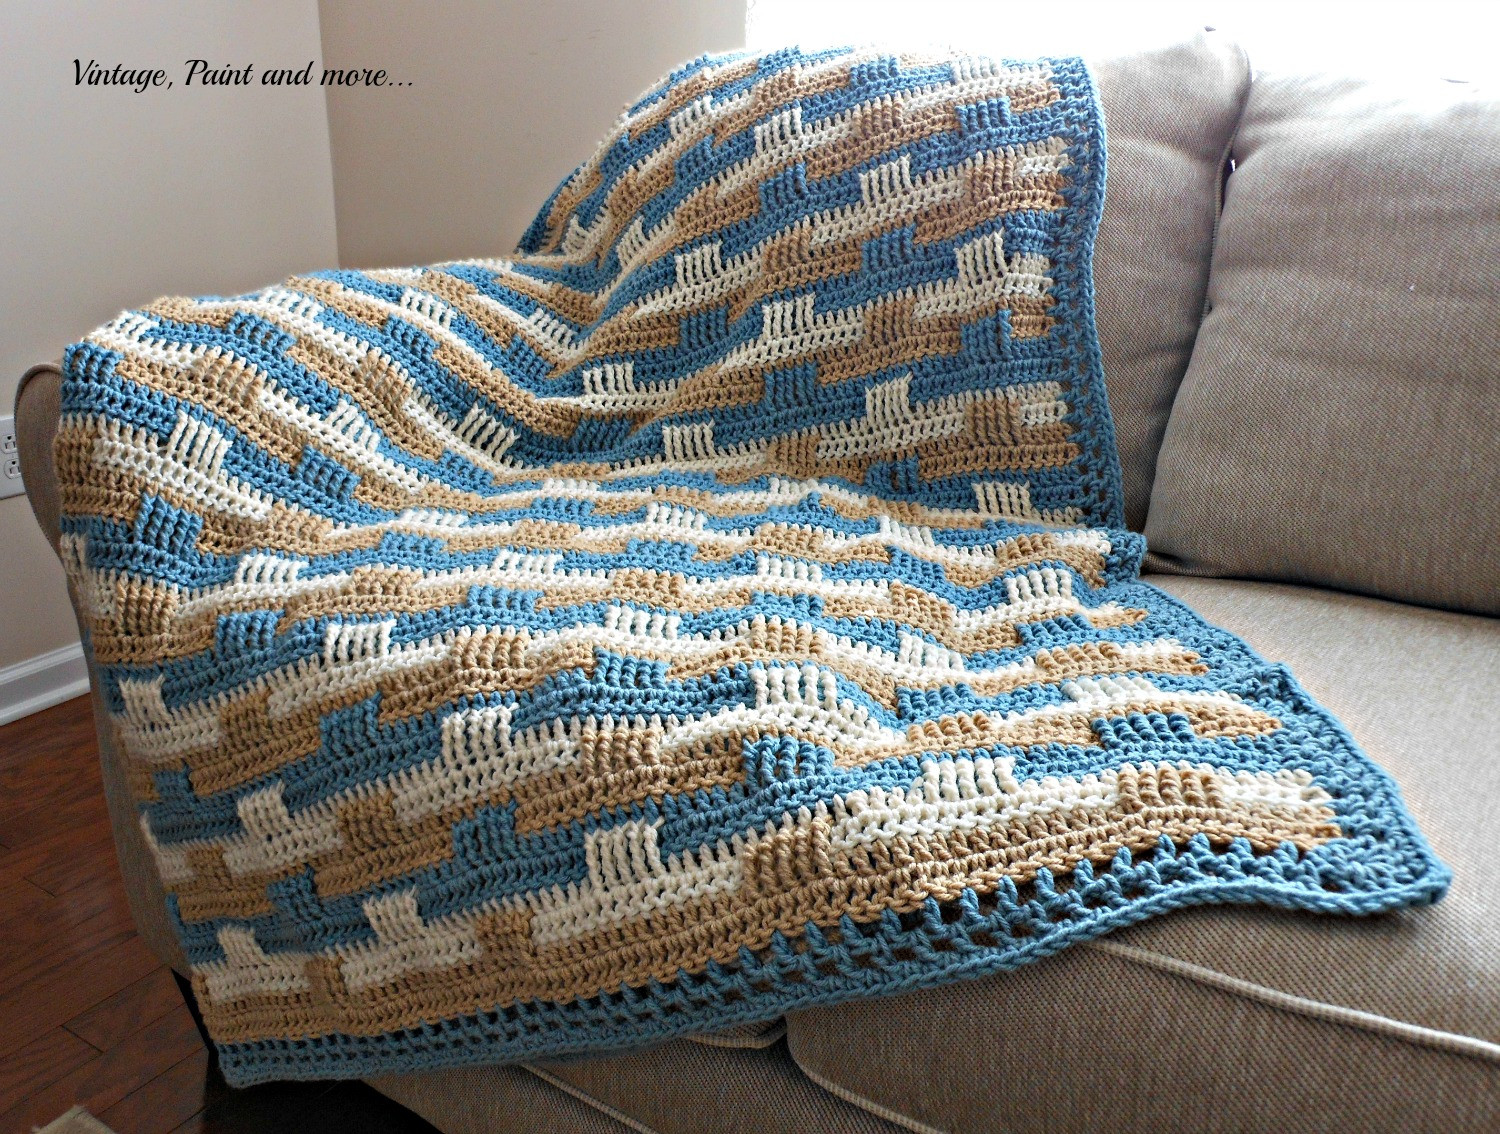 Elegant Crochet Afghan and Stenciled Pillow Basketweave Crochet Afghan Pattern Of Amazing 50 Images Basketweave Crochet Afghan Pattern